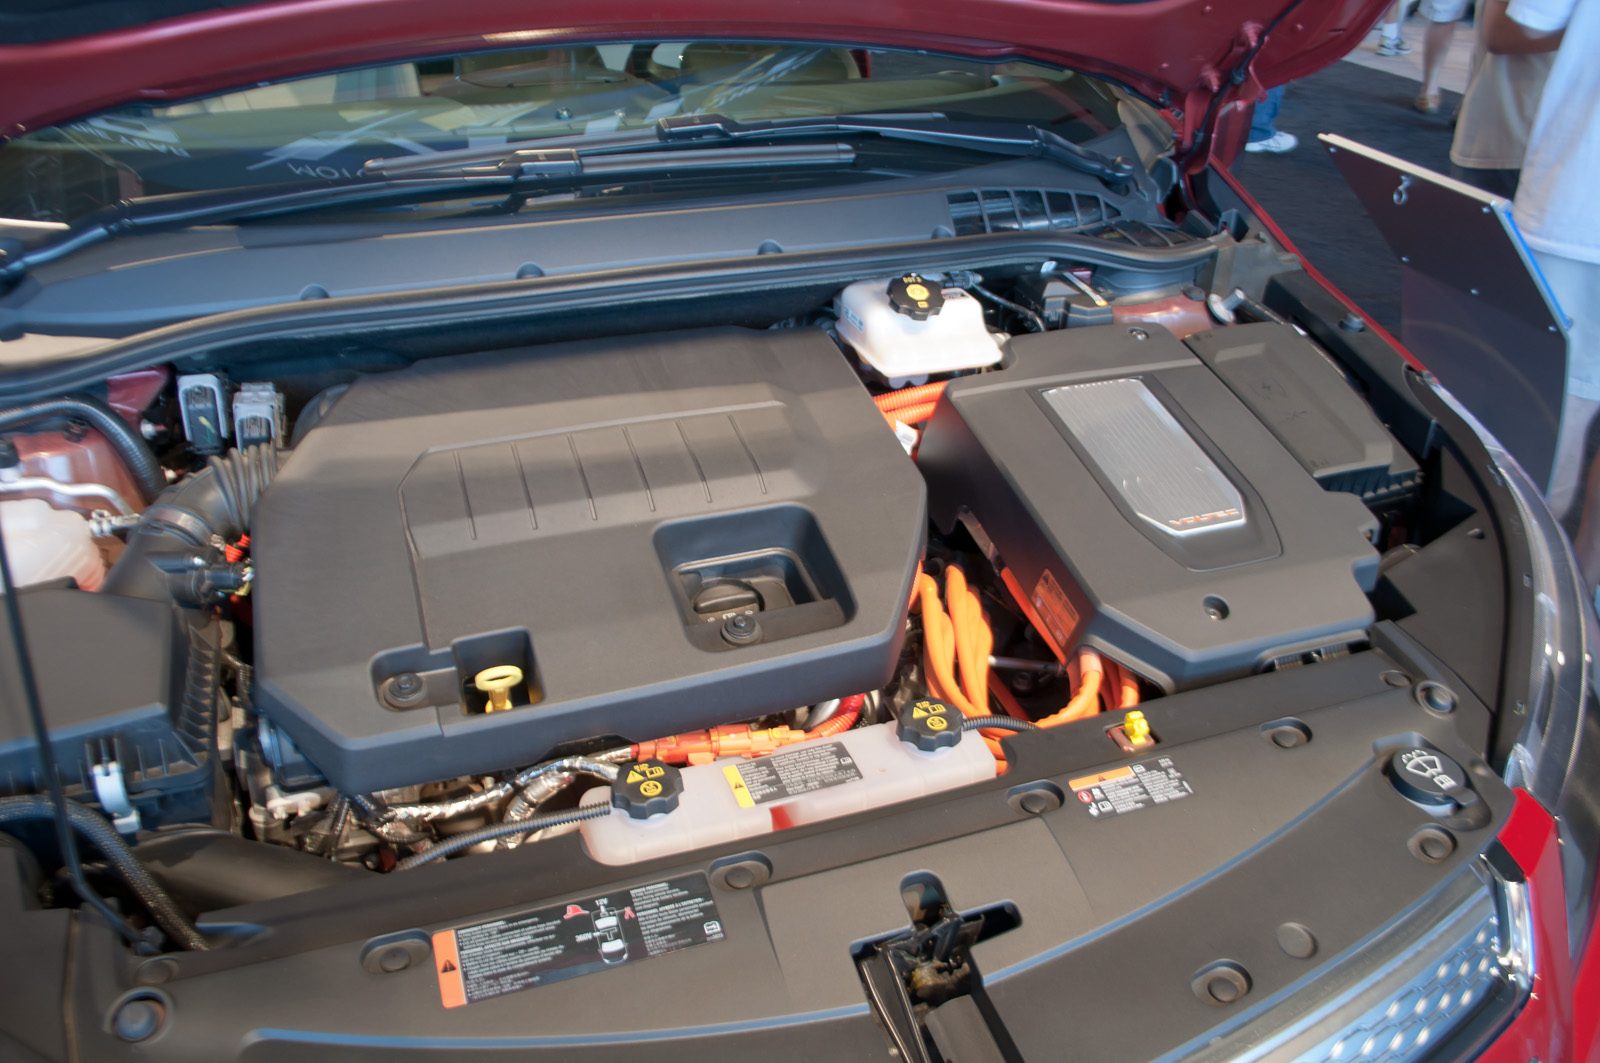 Test a car battery